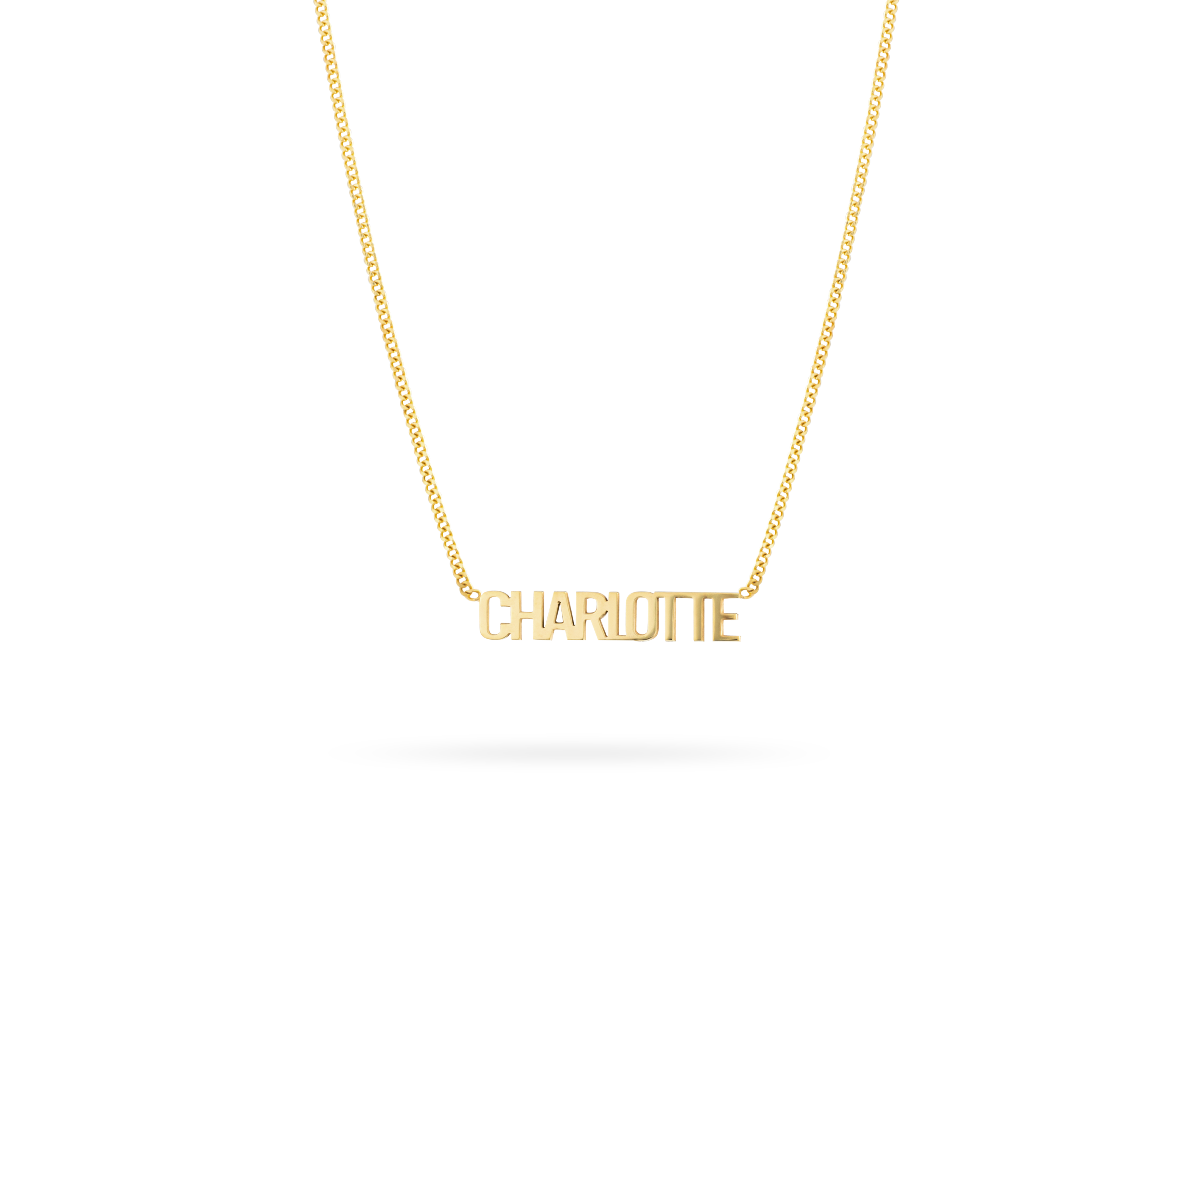 Name Necklace 14K